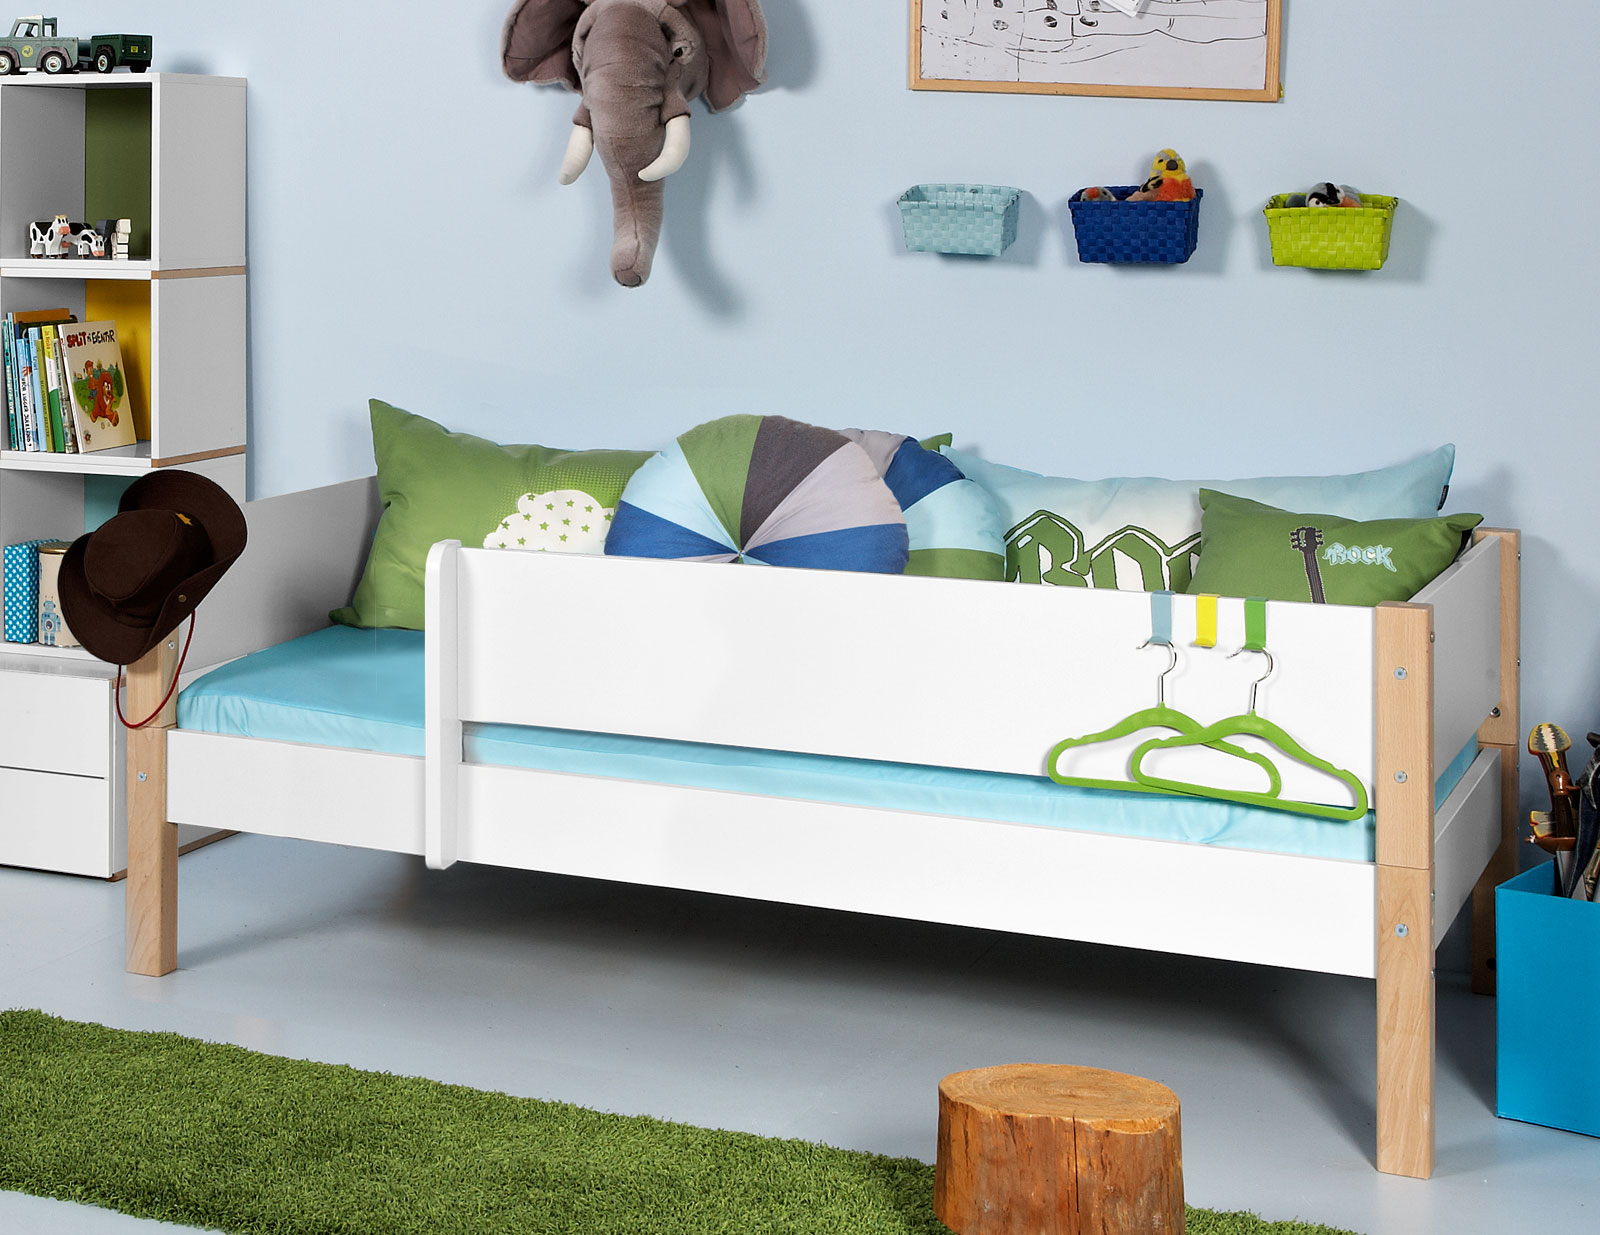 kinderbett inkl absturzsicherung und lattenrost kids town. Black Bedroom Furniture Sets. Home Design Ideas